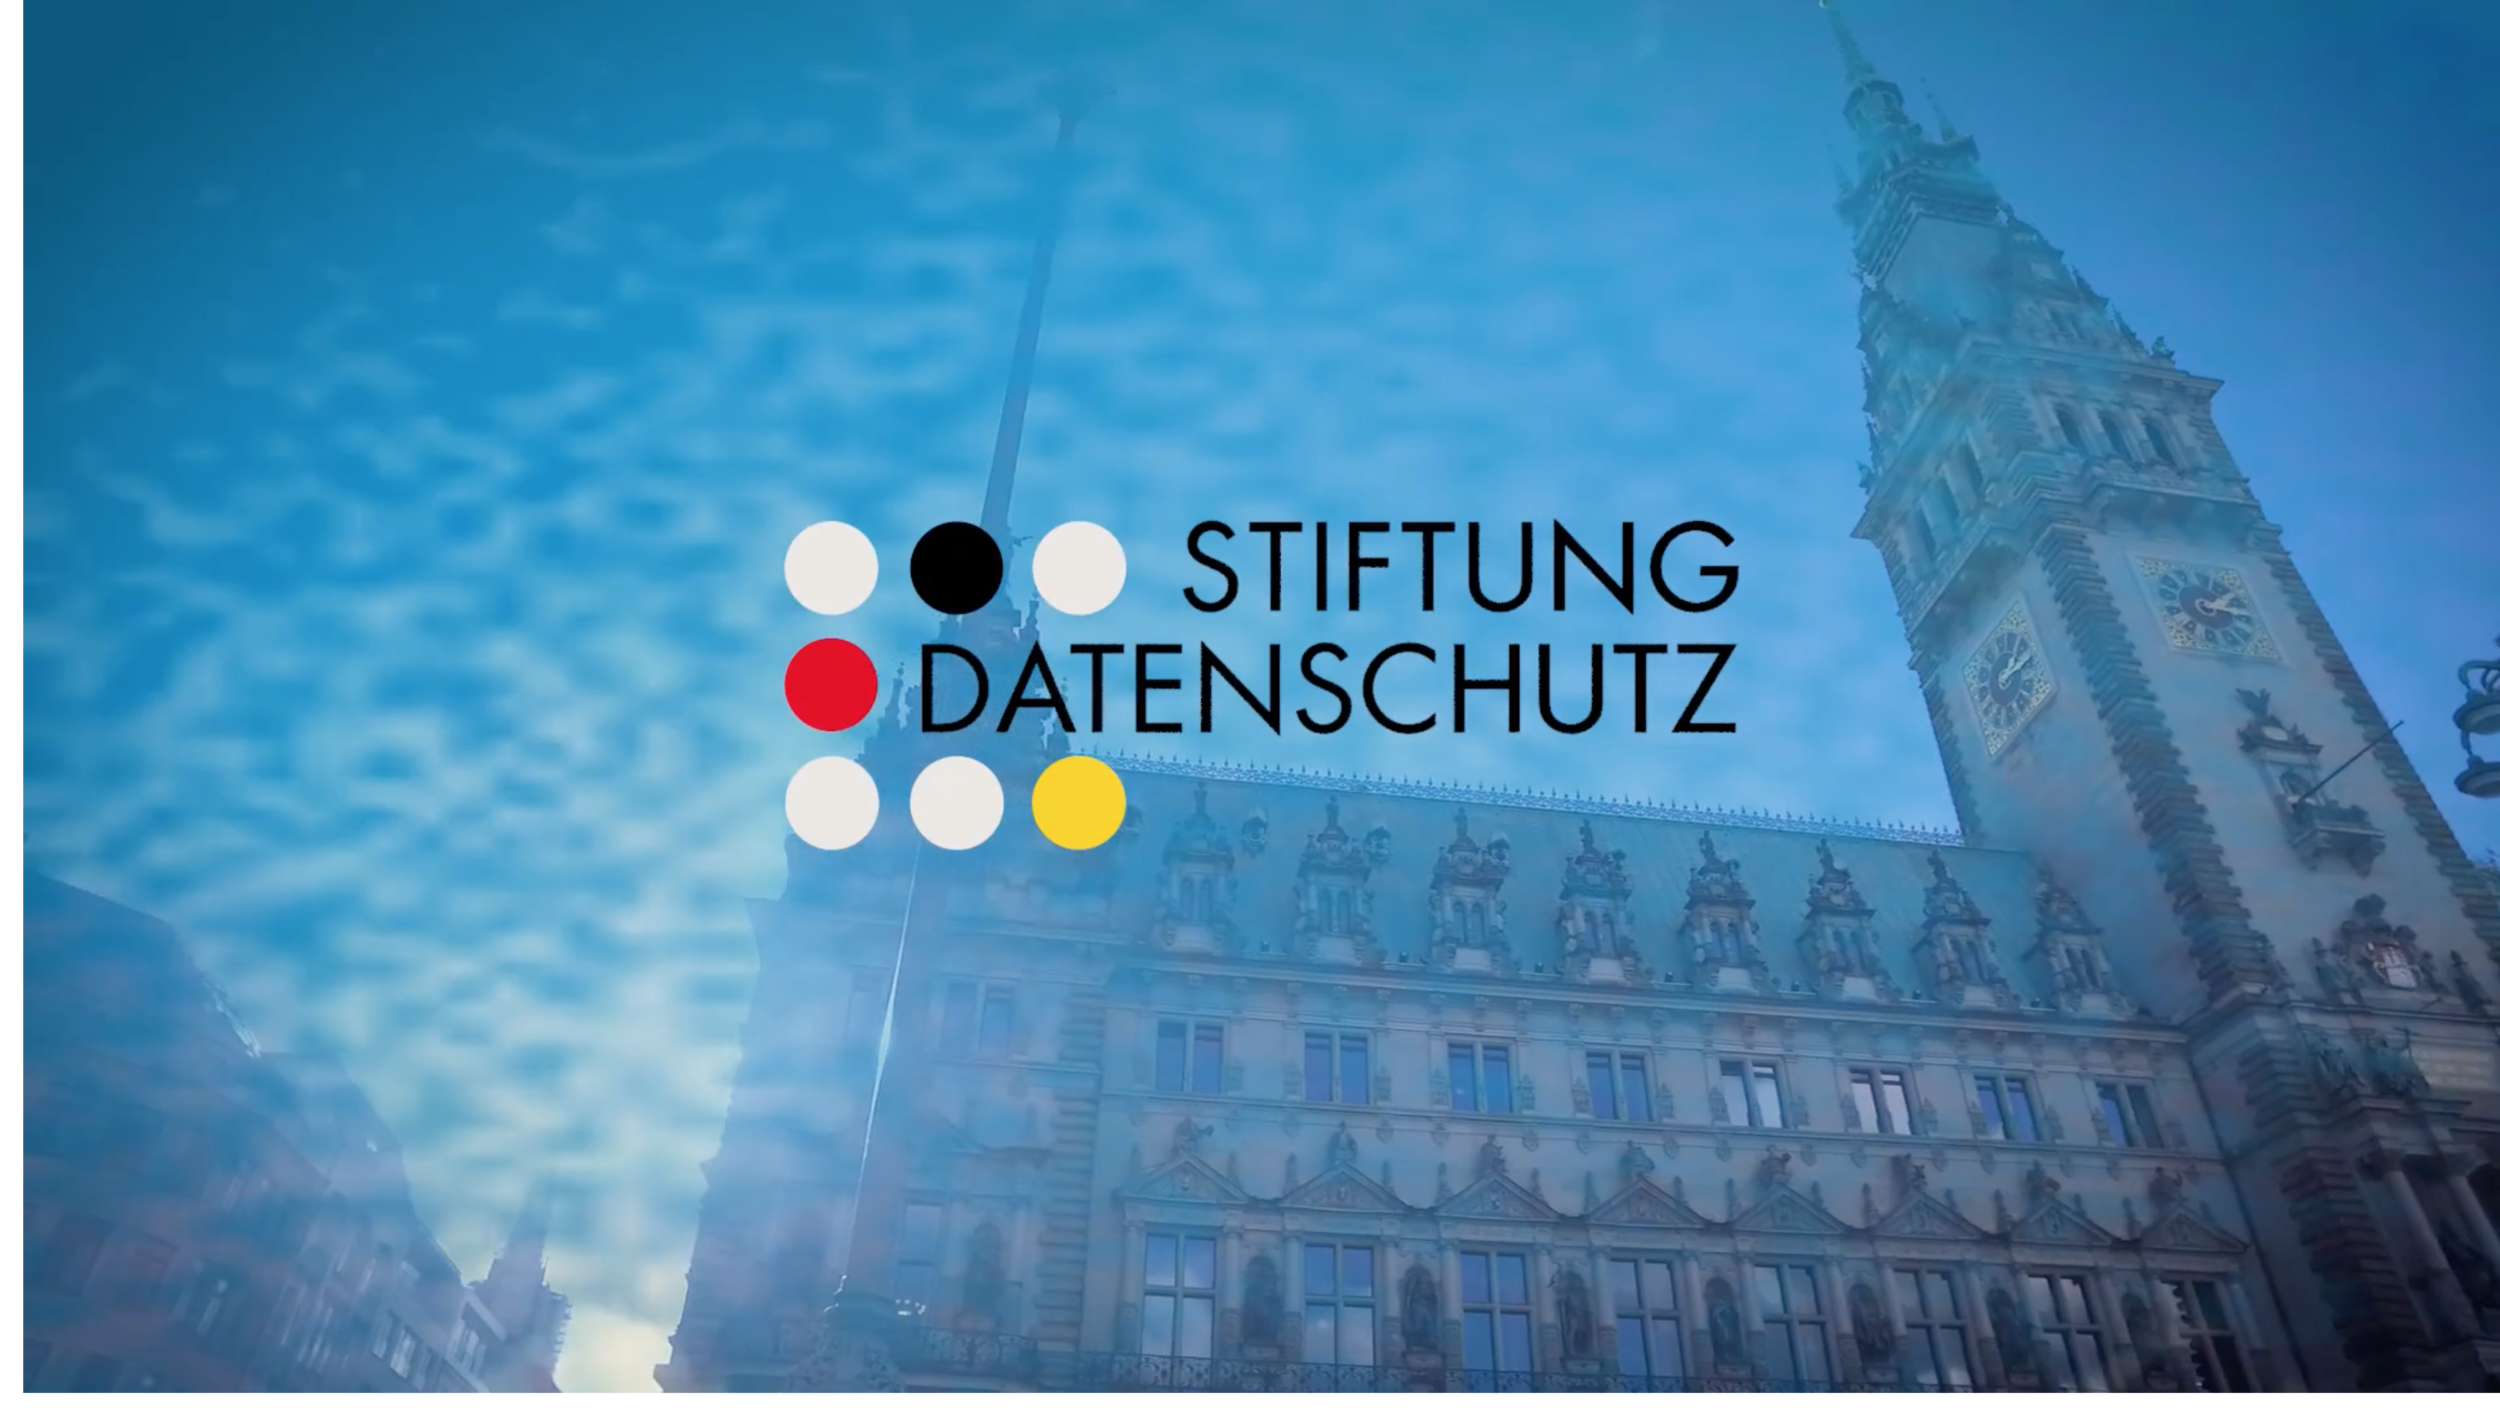 DatenTag_Innovation_HH.png